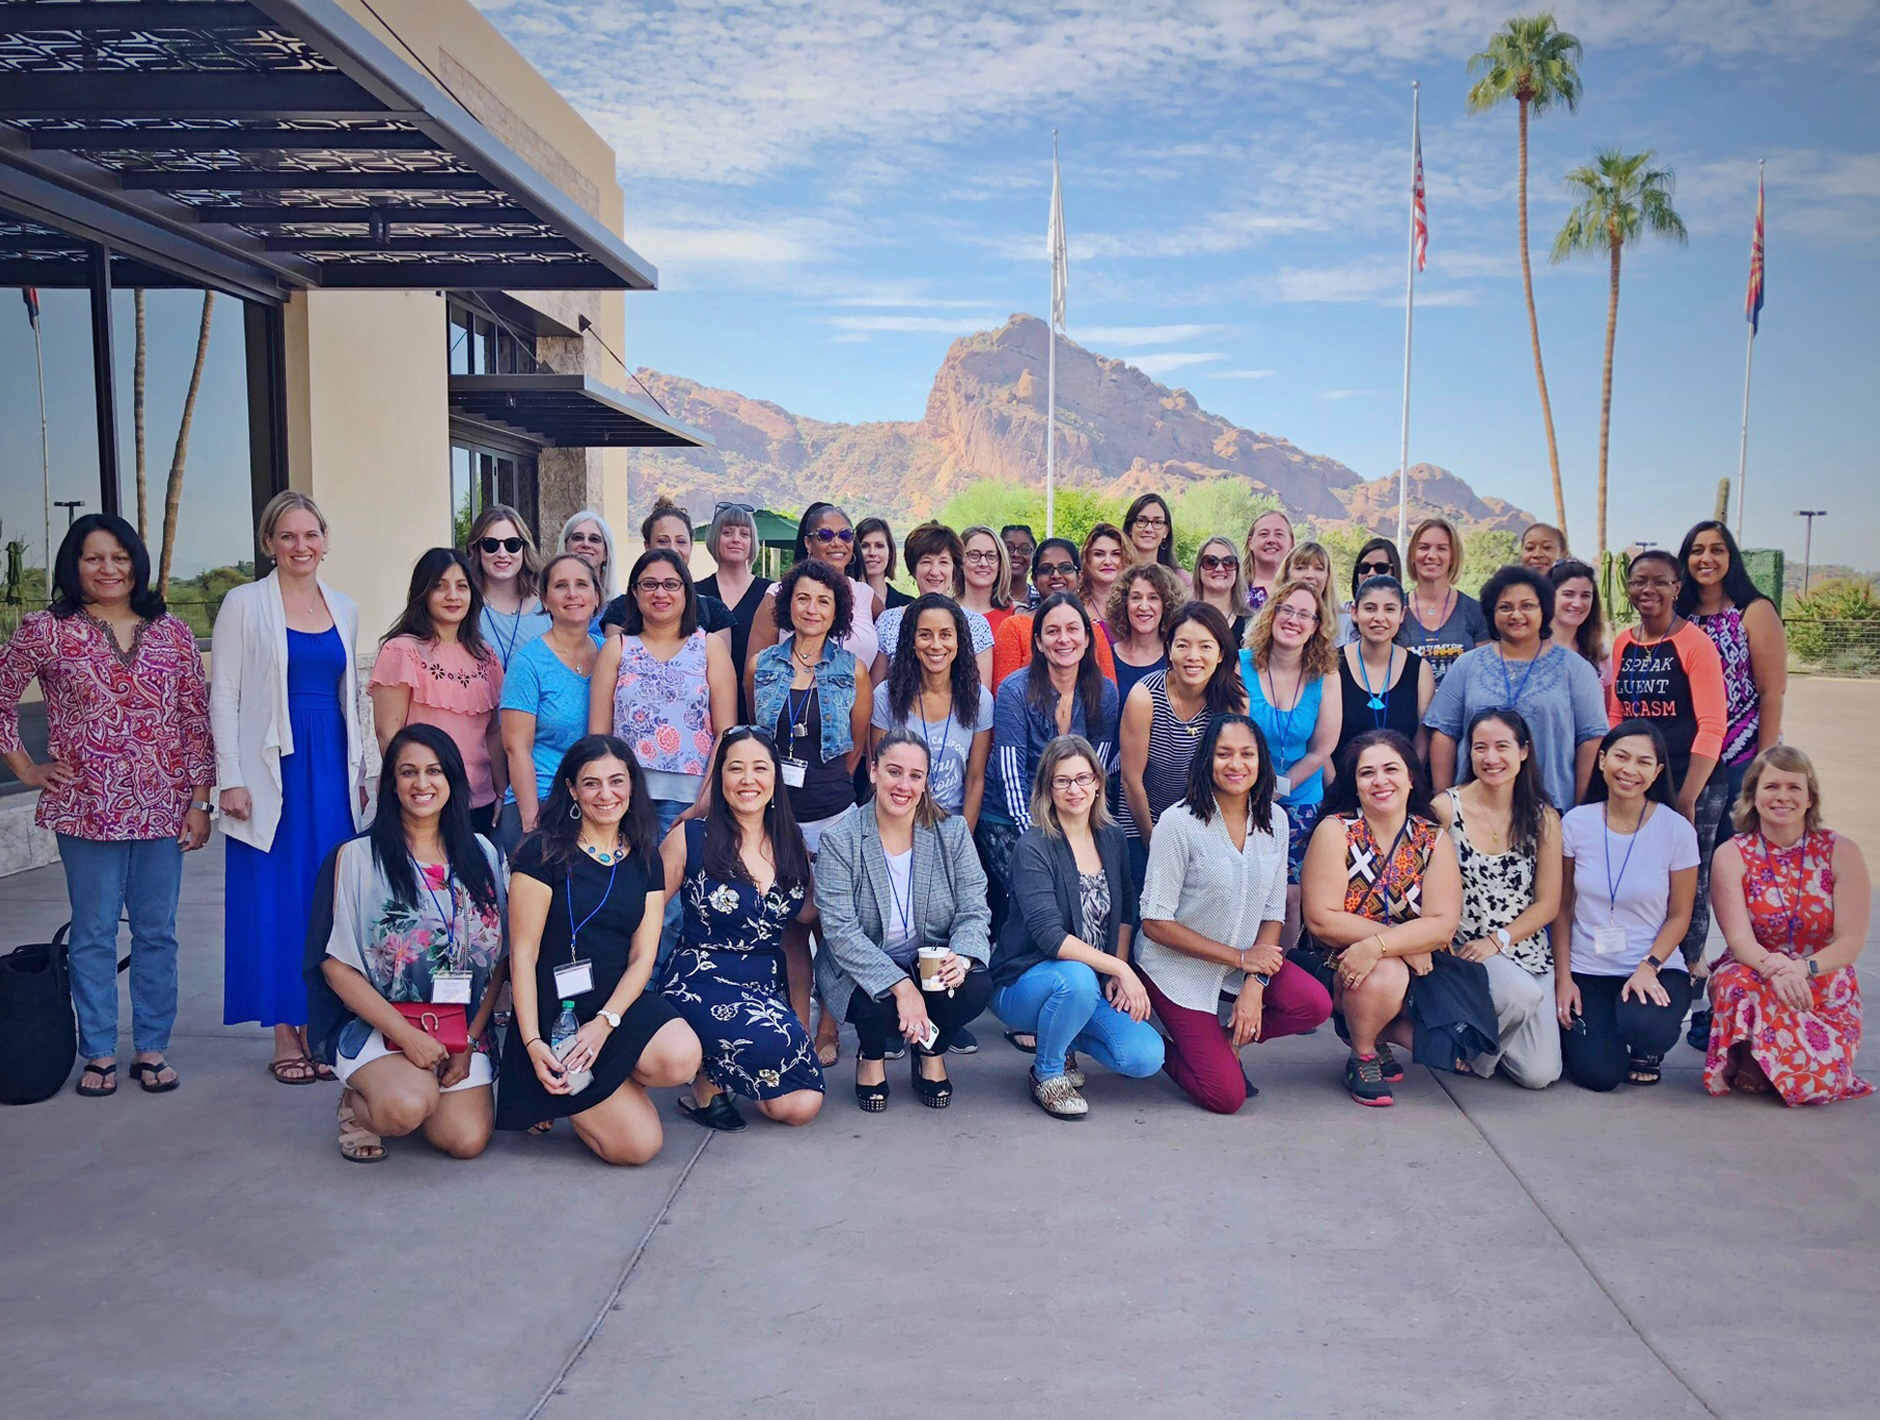 - Over the past few years, Women's Psychiatry Group has been a virtual source of networking and support for women psychiatrists across the country and world. We have reached out for expertise and new opinions with challenging cases, and we have provided guidance and a shoulder to lean on as we navigate our careers.